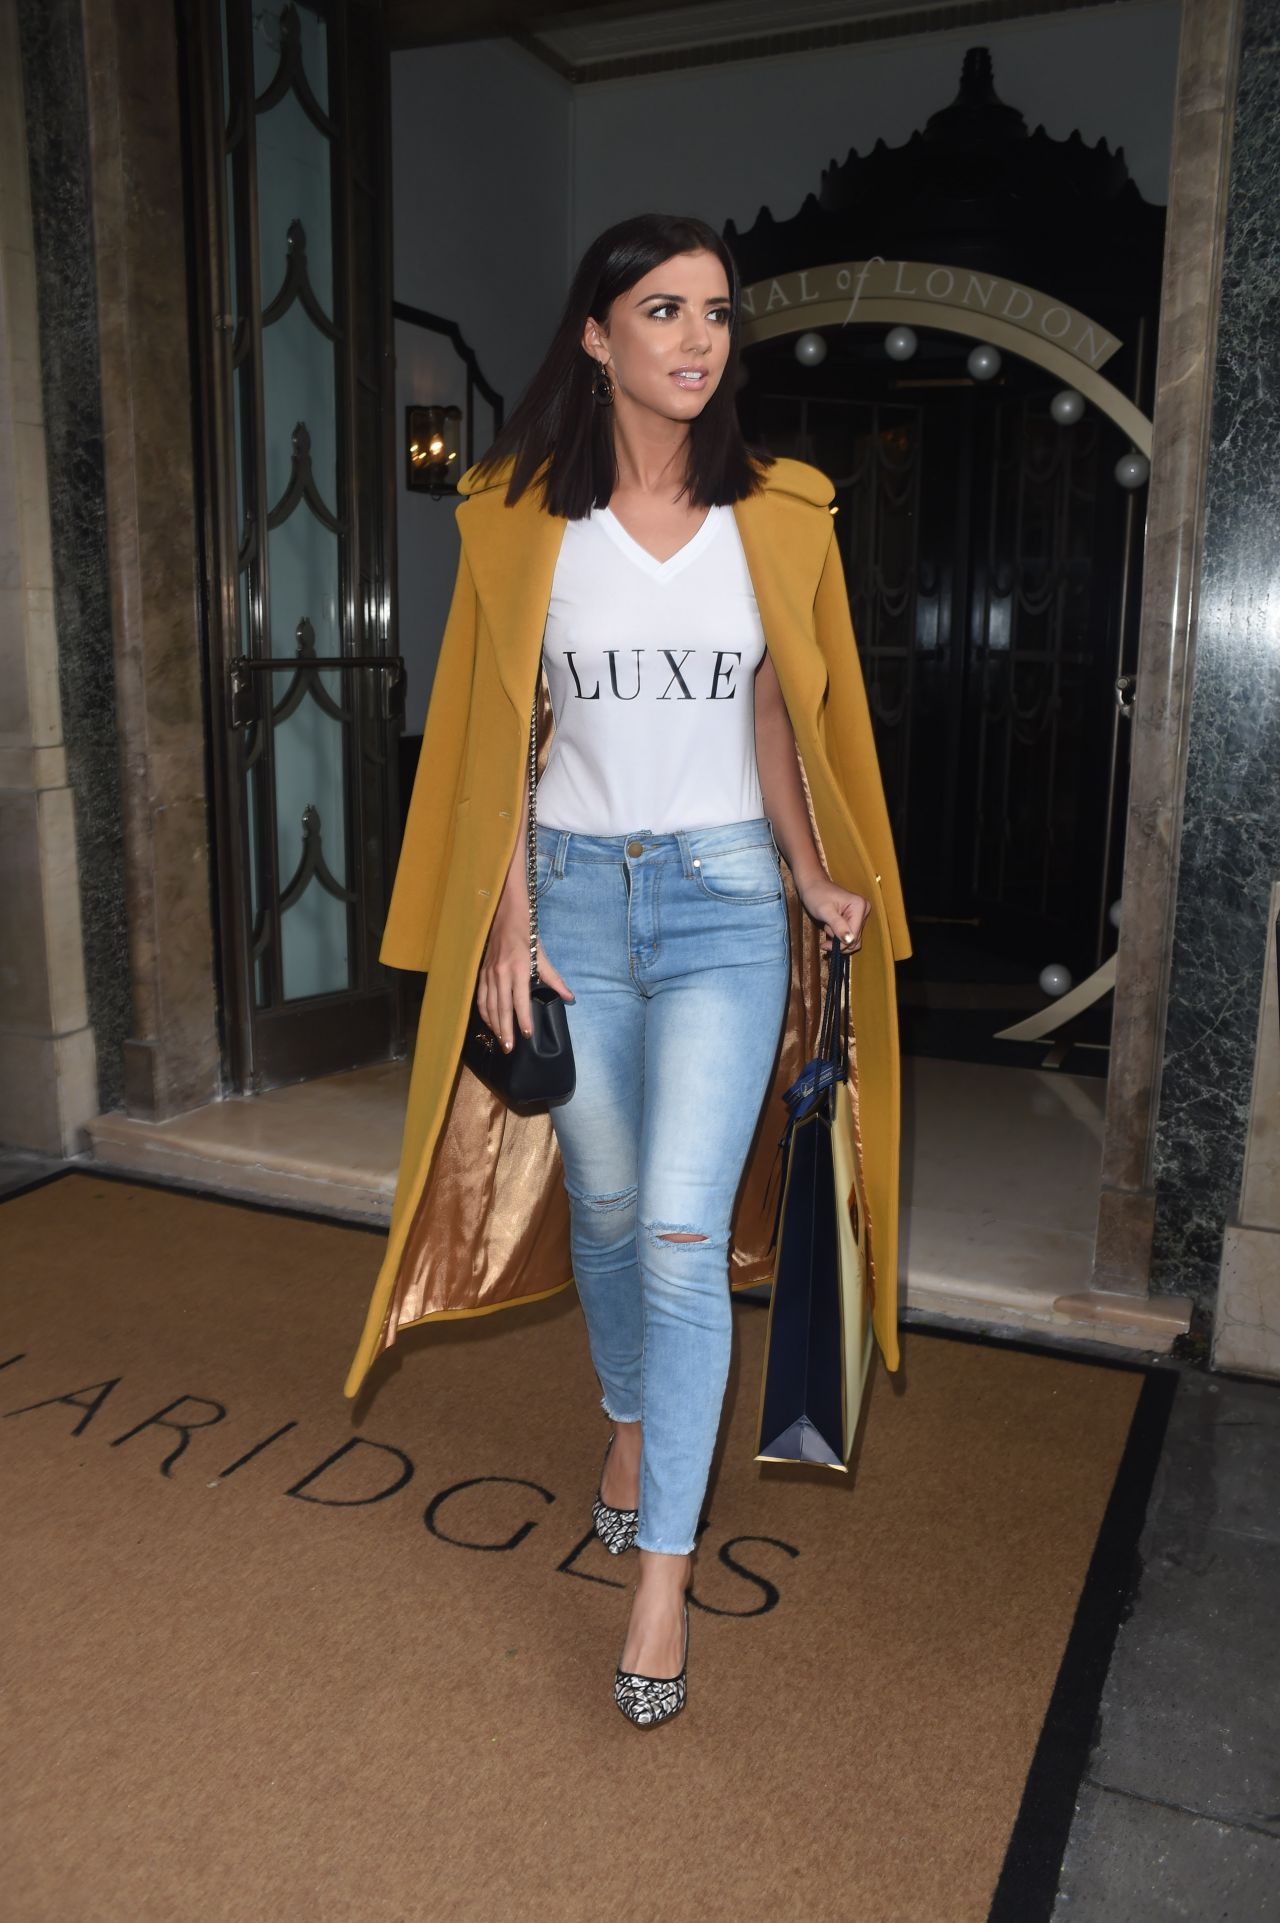 Lucy Mecklenburgh Casual Style At The Aspinal Fashion Show In London 2 22 2016